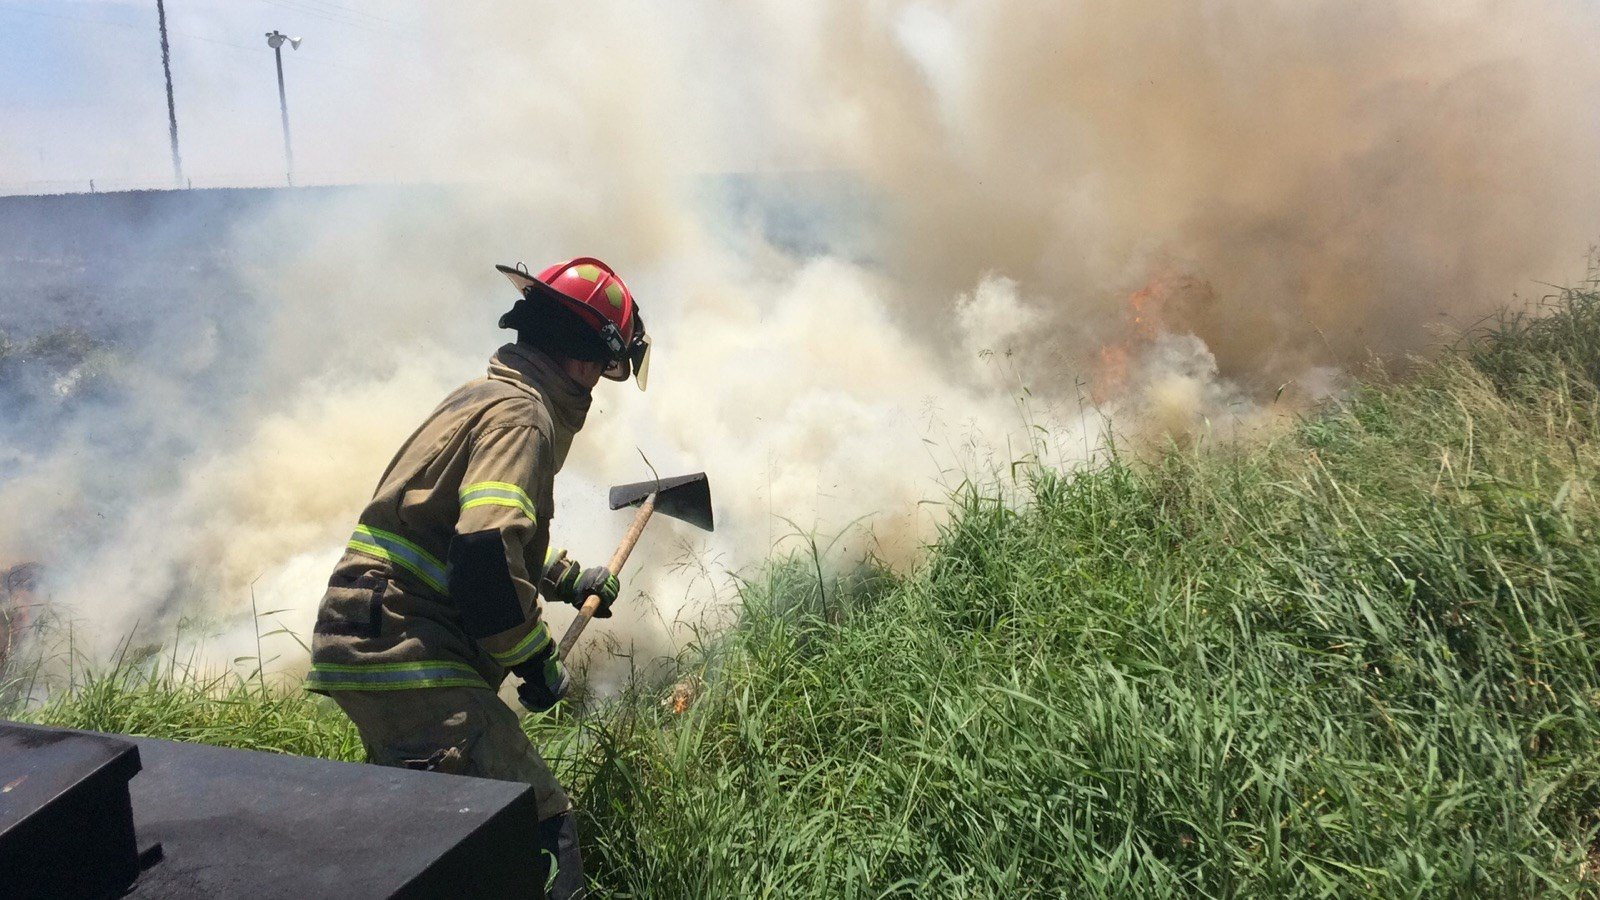 A firefighter tries to put out a brush fire.